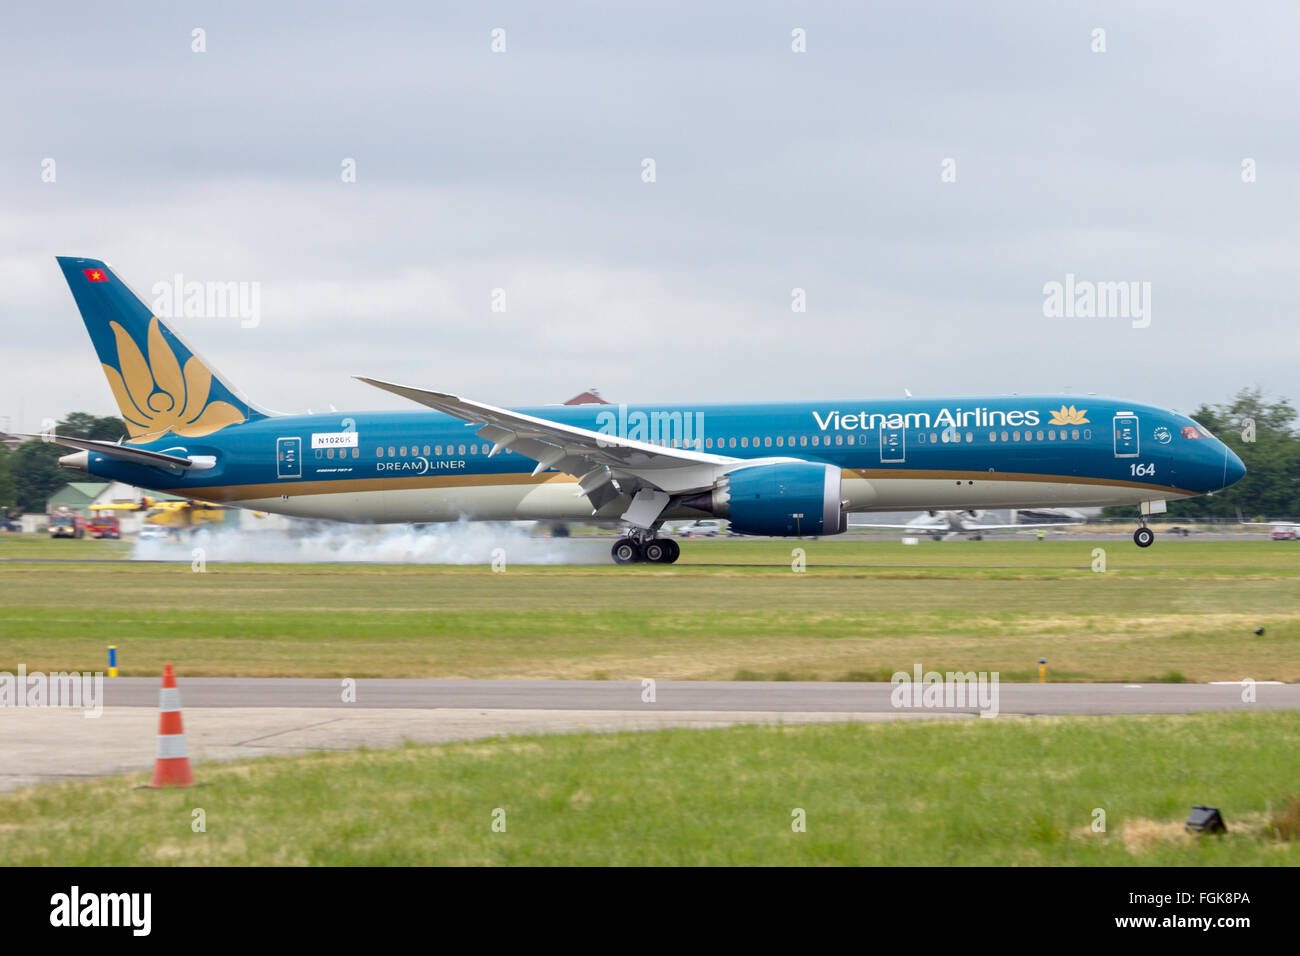 Brand new Vietnam Airlines Boeing 787-900 landing at the 51st International Paris Air show - Stock Image